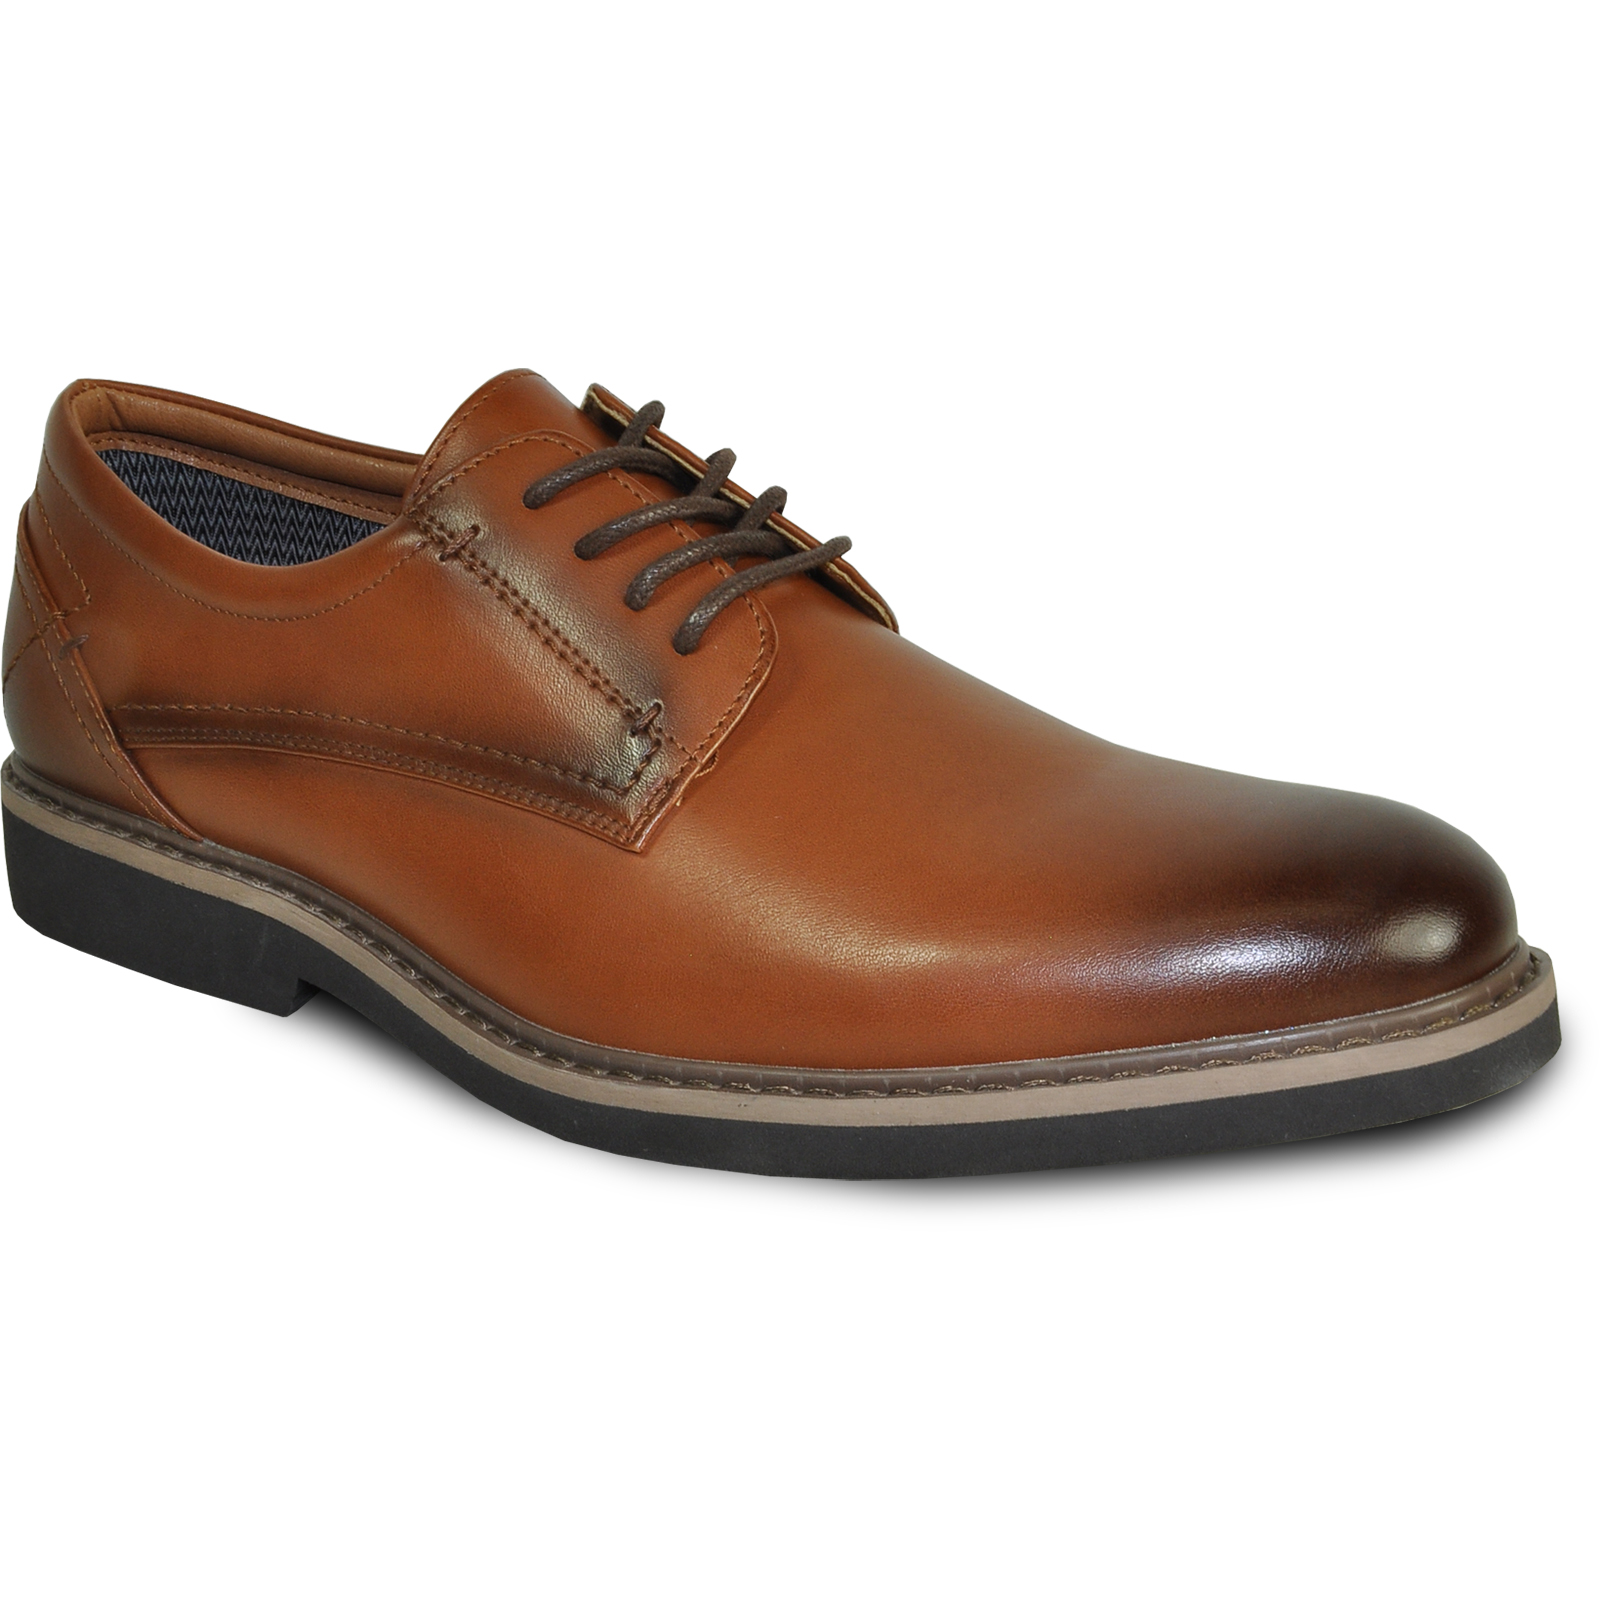 VALLO-1_Brown Smoke Toe